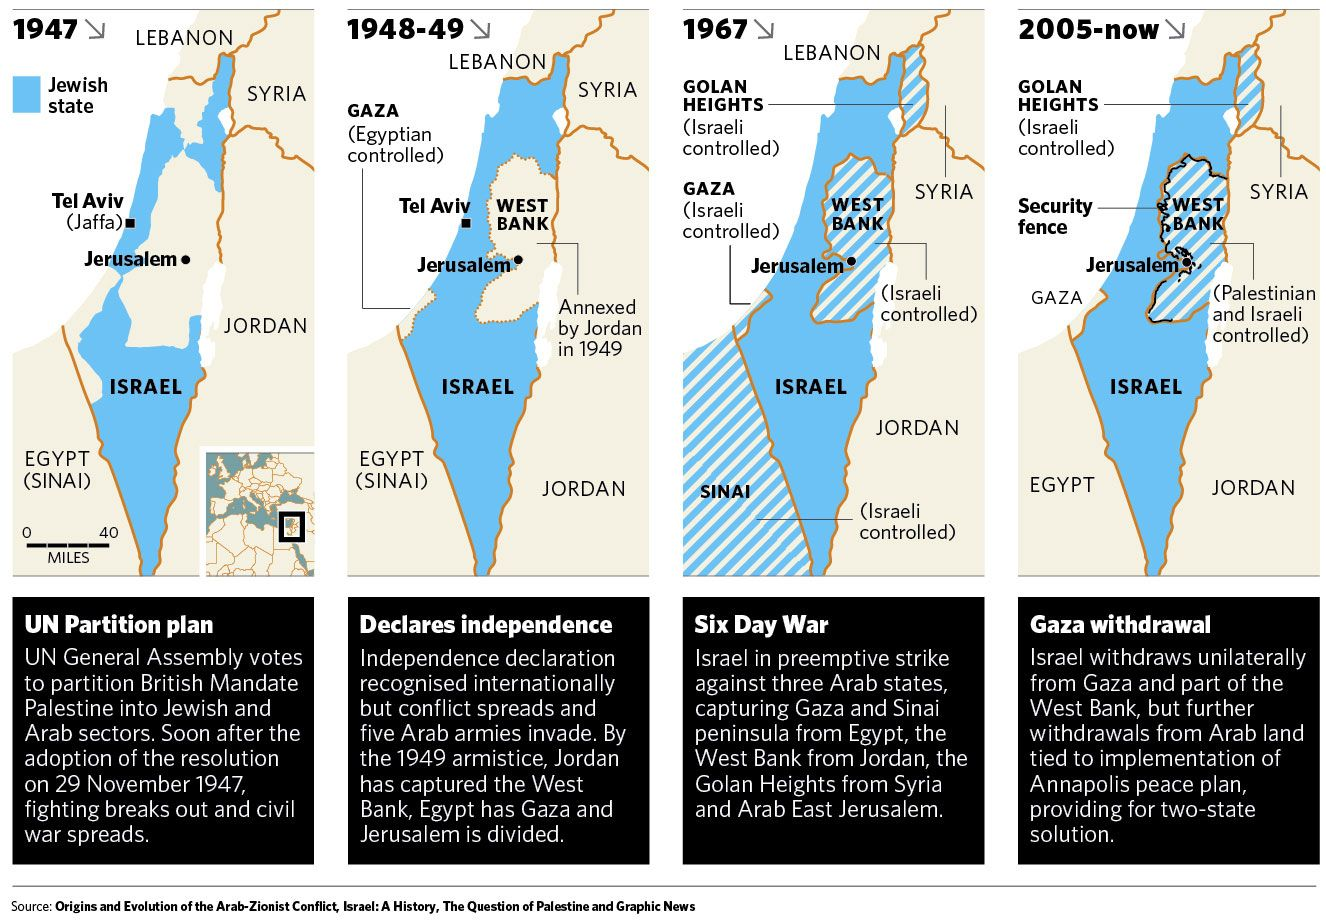 analysis of the six day war The six-day war began 50 years ago: israel attacked three of its arab neighbors, who had threatened to annihilate the jewish state effects of israel's victory are still felt in the region.